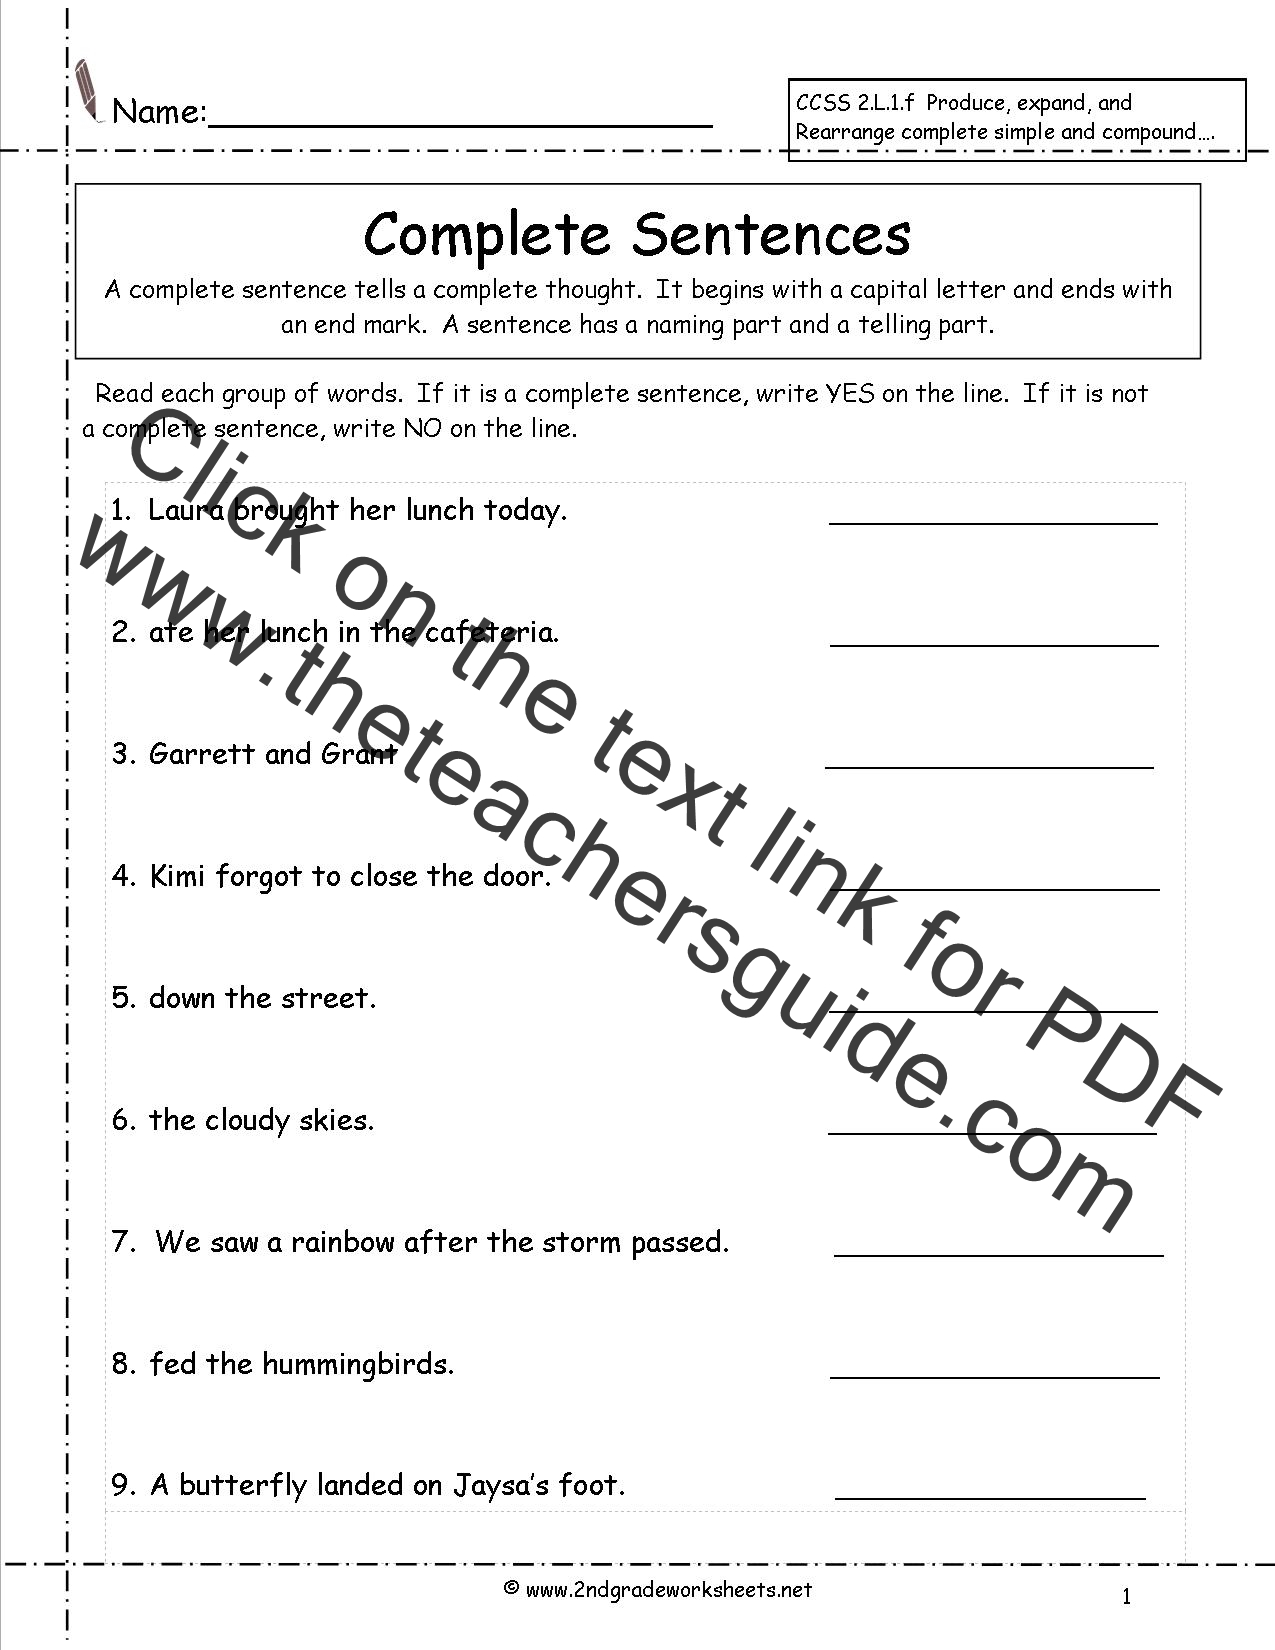 Second Grade Sentences Worksheets CCSS 2L1f Worksheets – Compound Subject and Predicate Worksheets